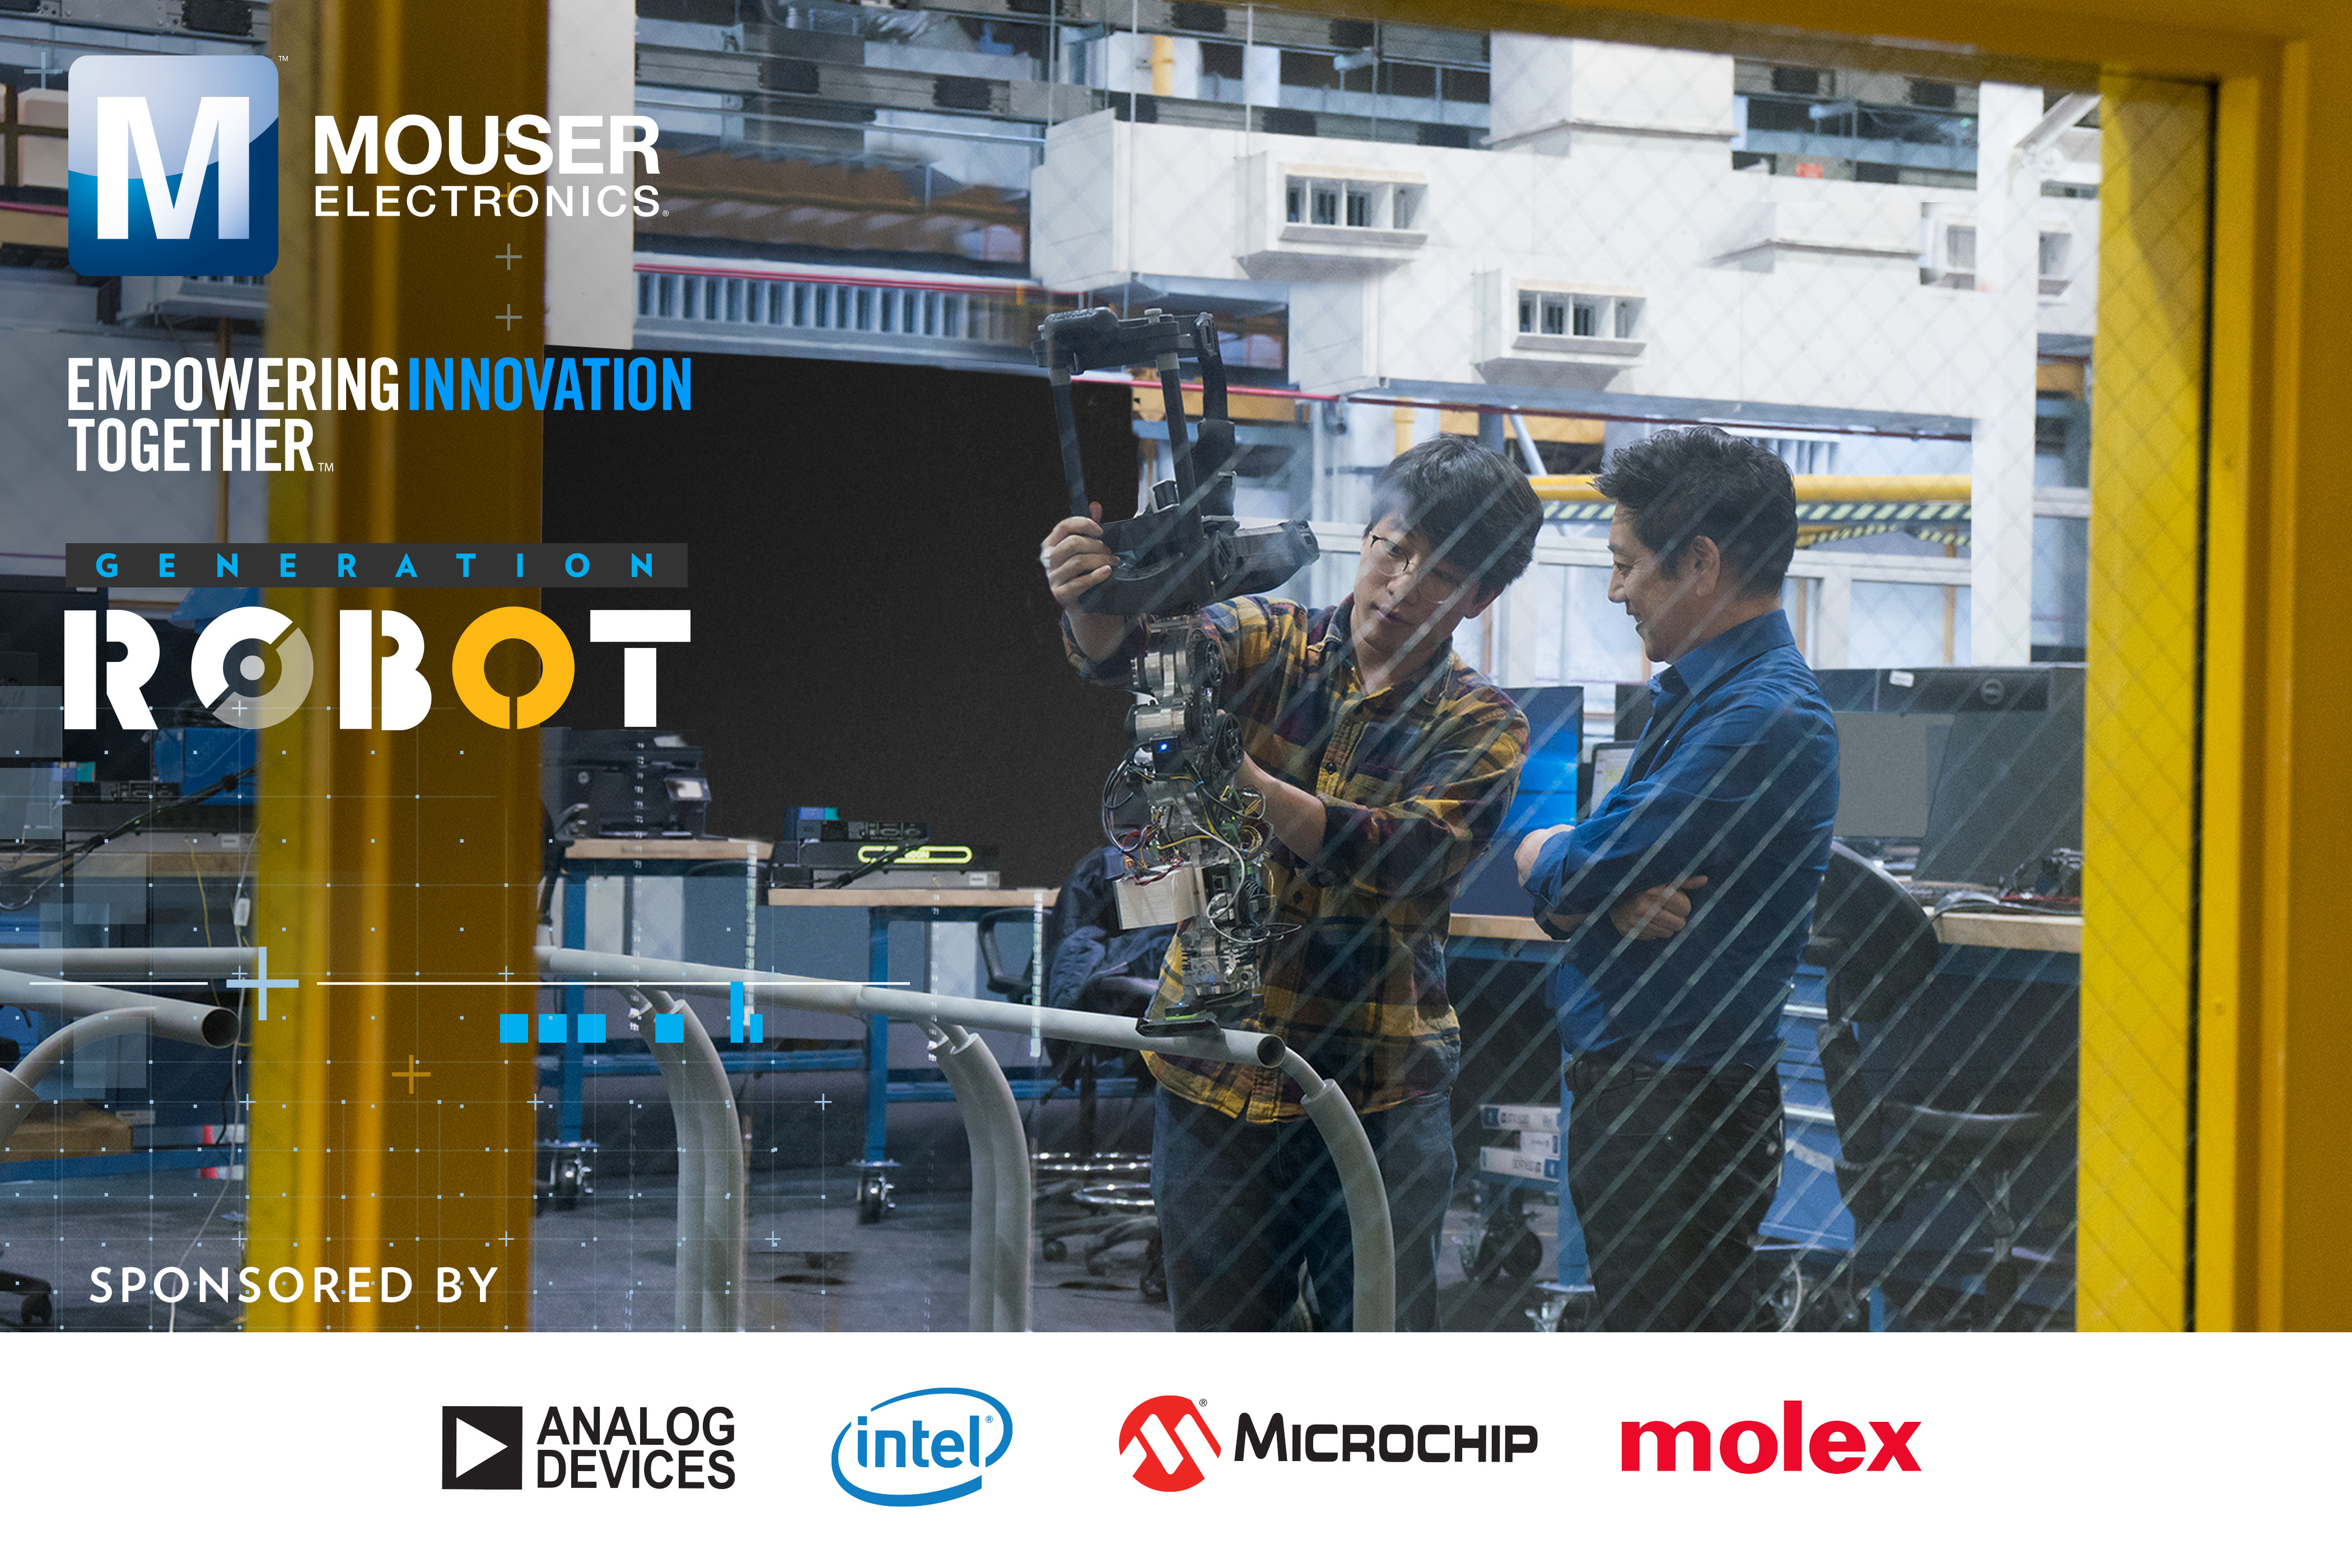 Mouser Electronics And Grant Imahara Launch 2018 Empowering